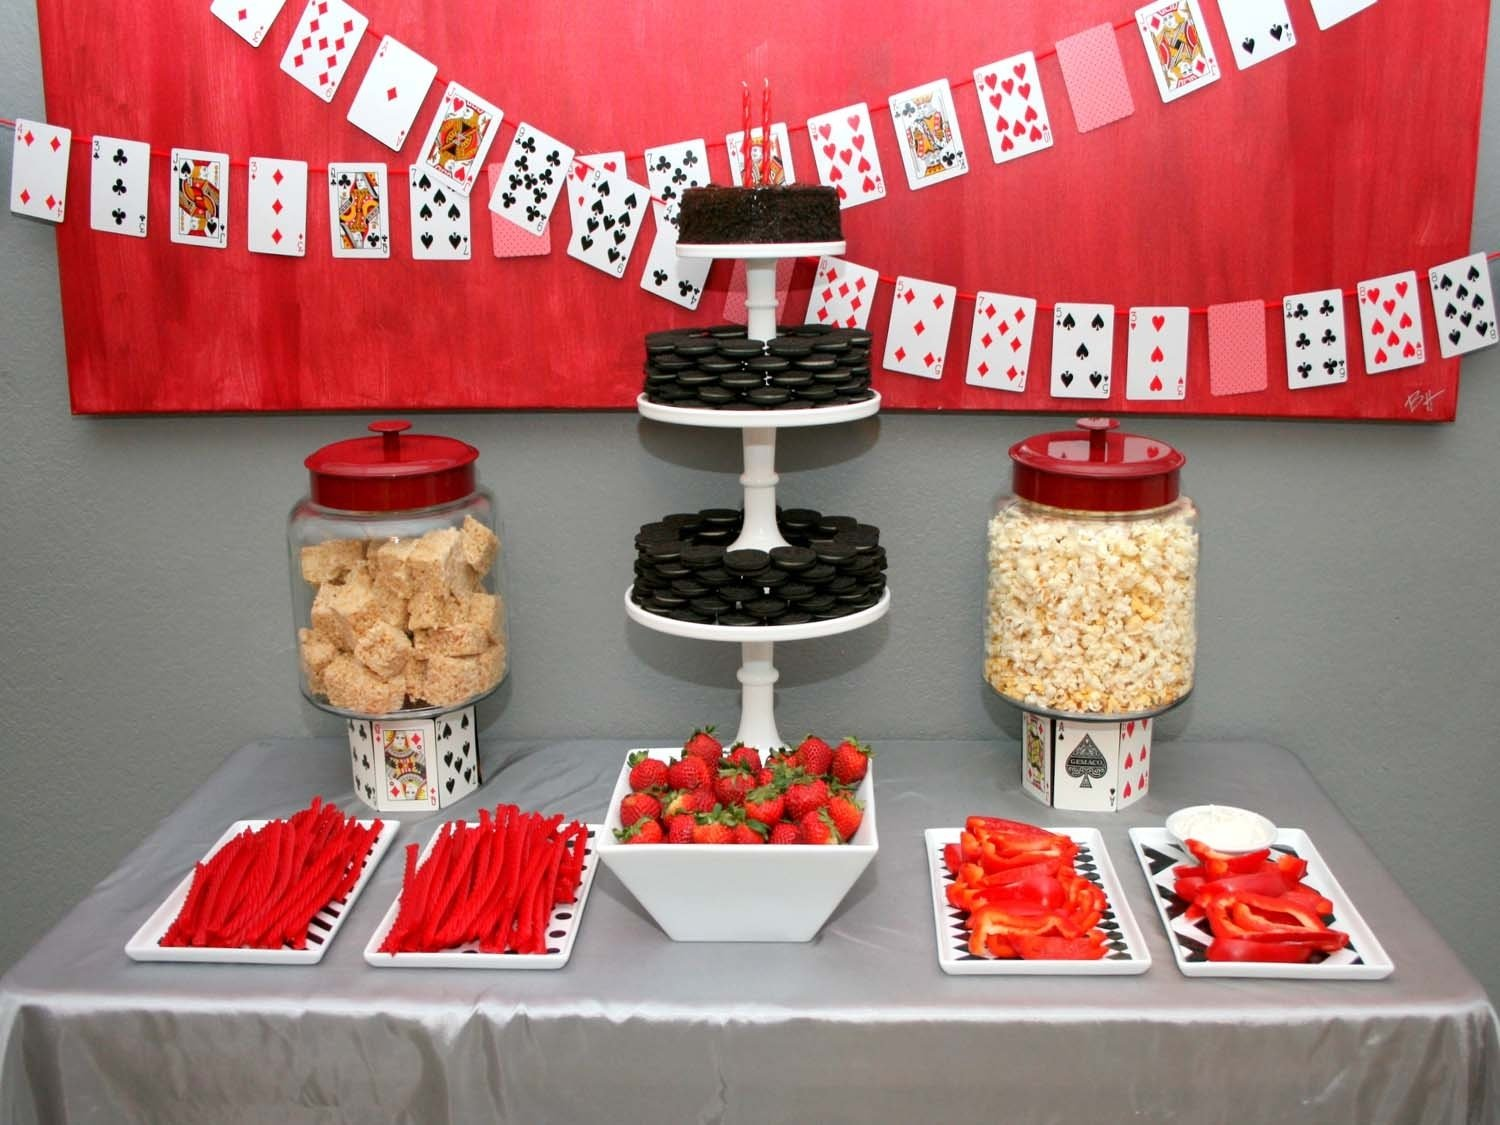 10 Stunning Las Vegas Birthday Party Ideas how to throw a casino party casino party tips planning a casino 2020